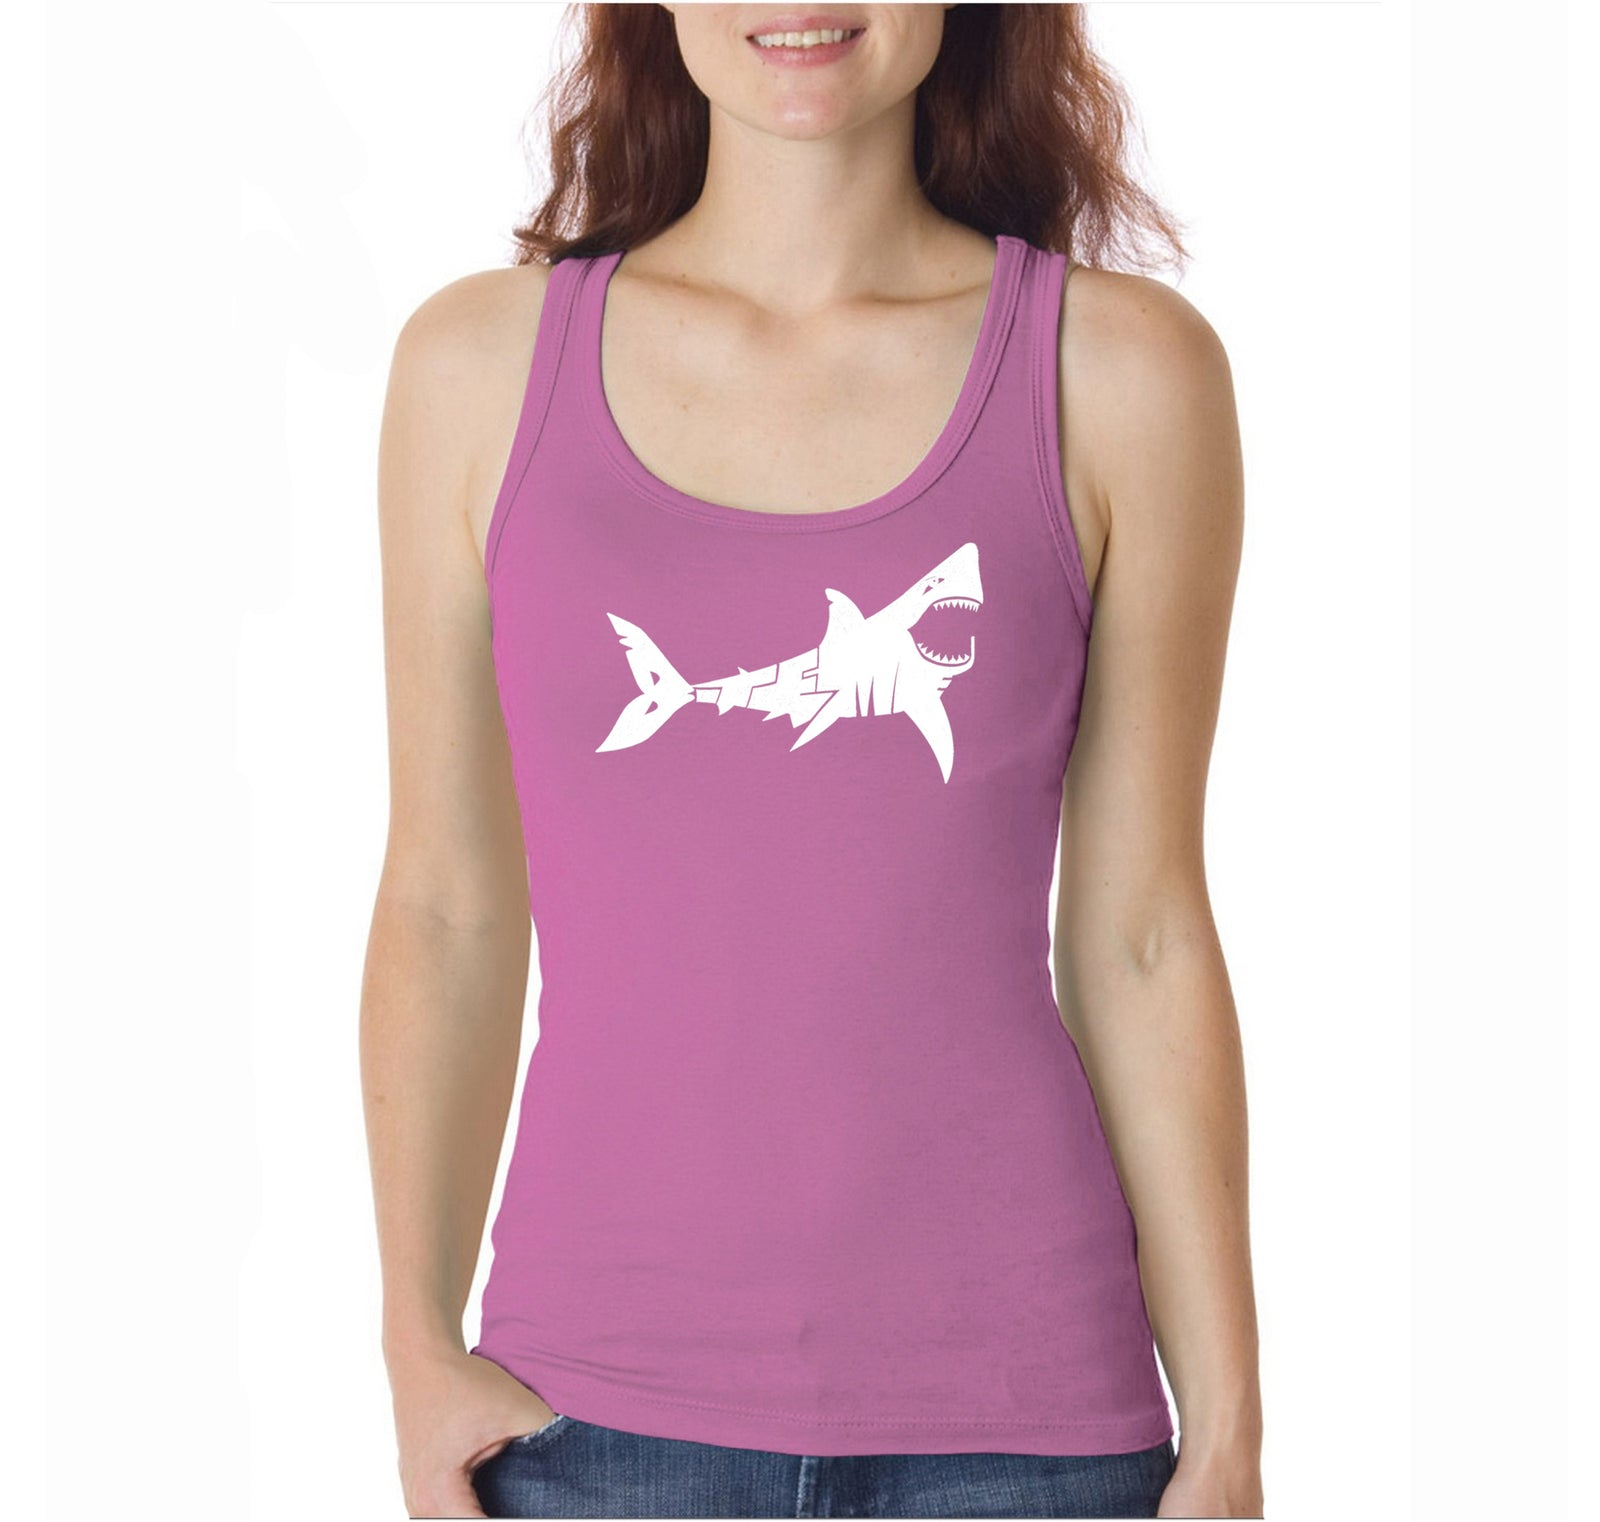 Women's Tank Top - BITE ME